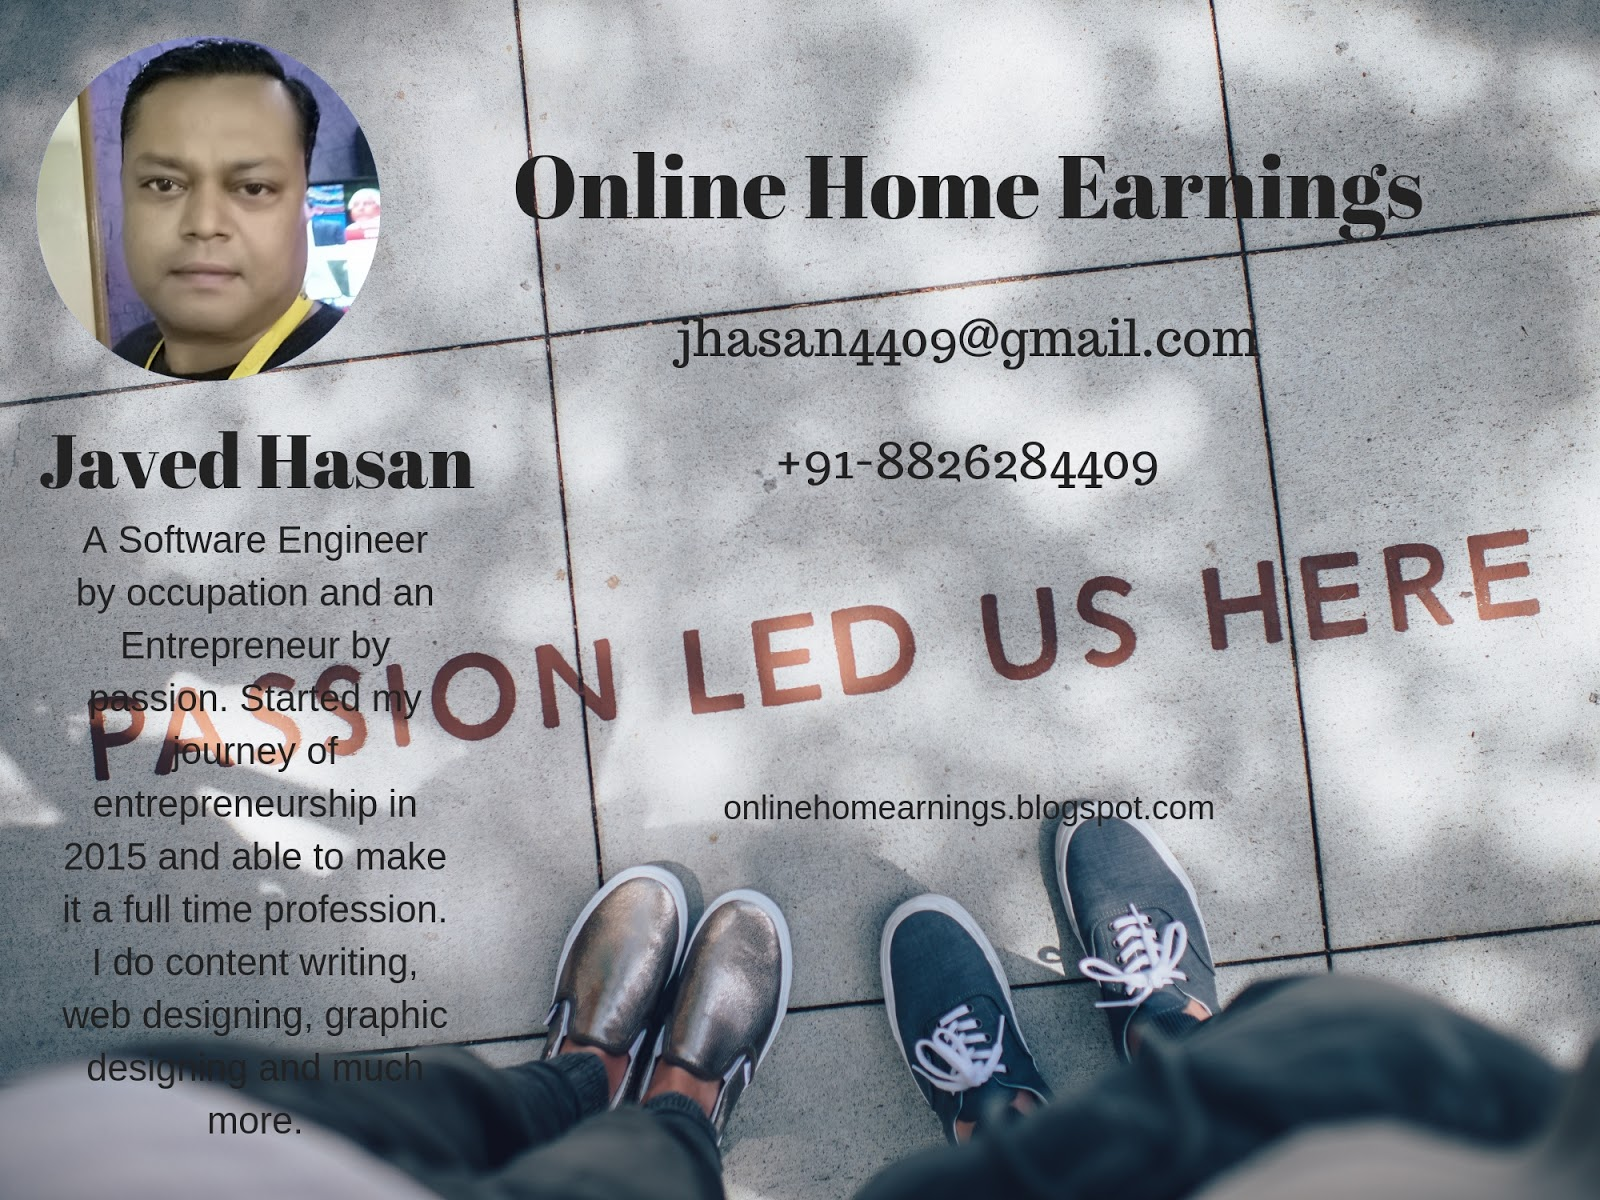 Online Home Earnings - About Us